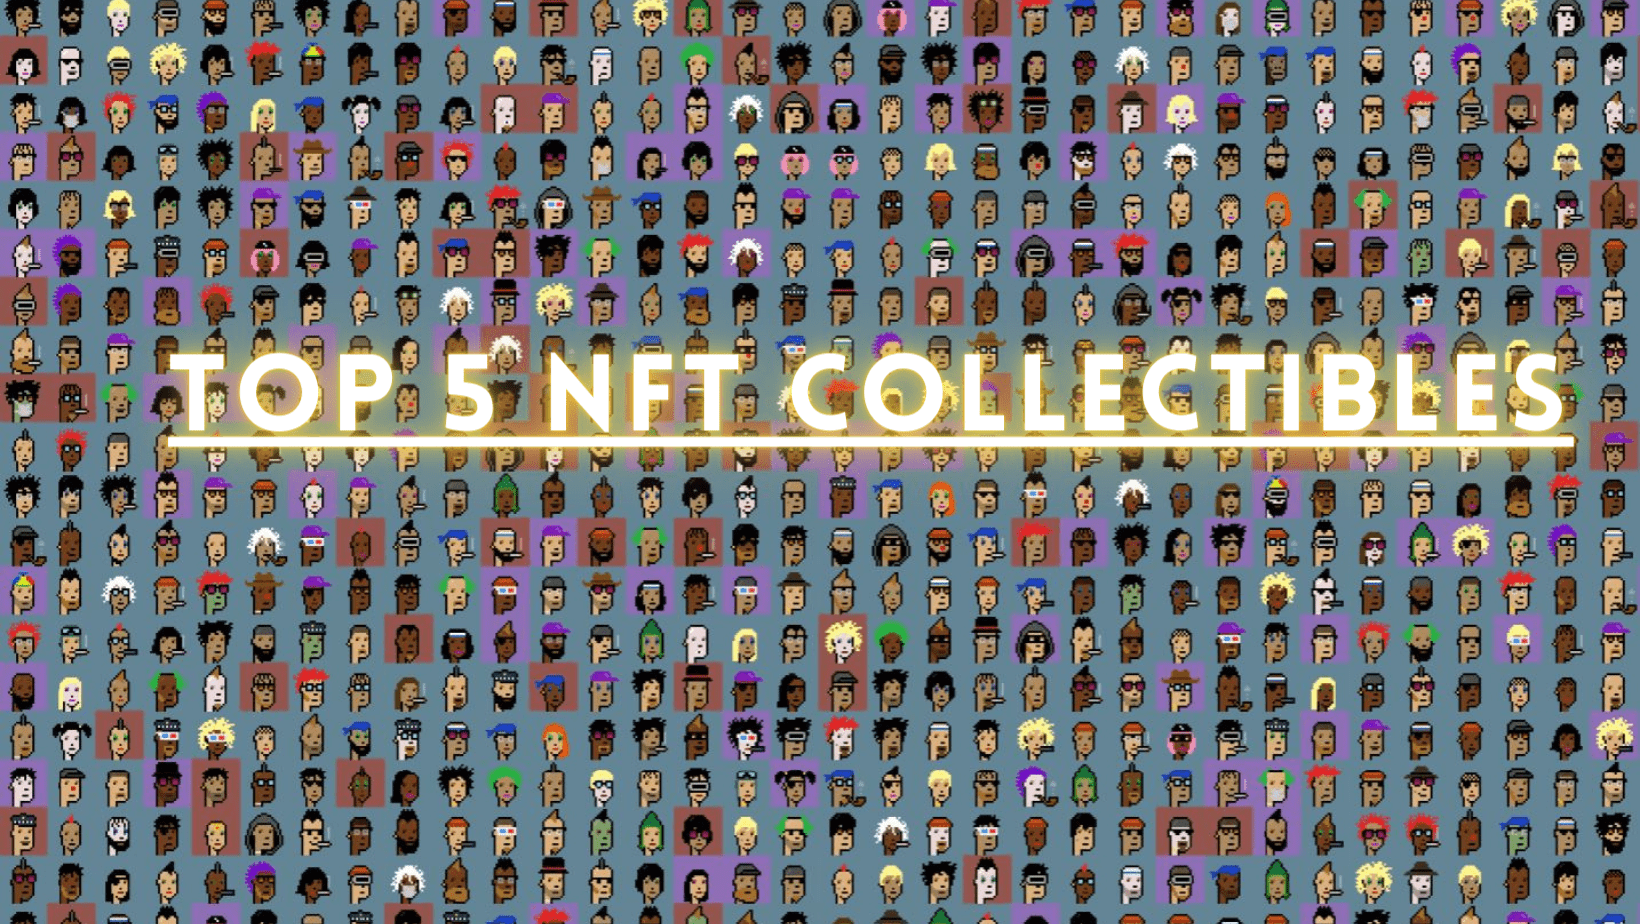 NFT collectibles